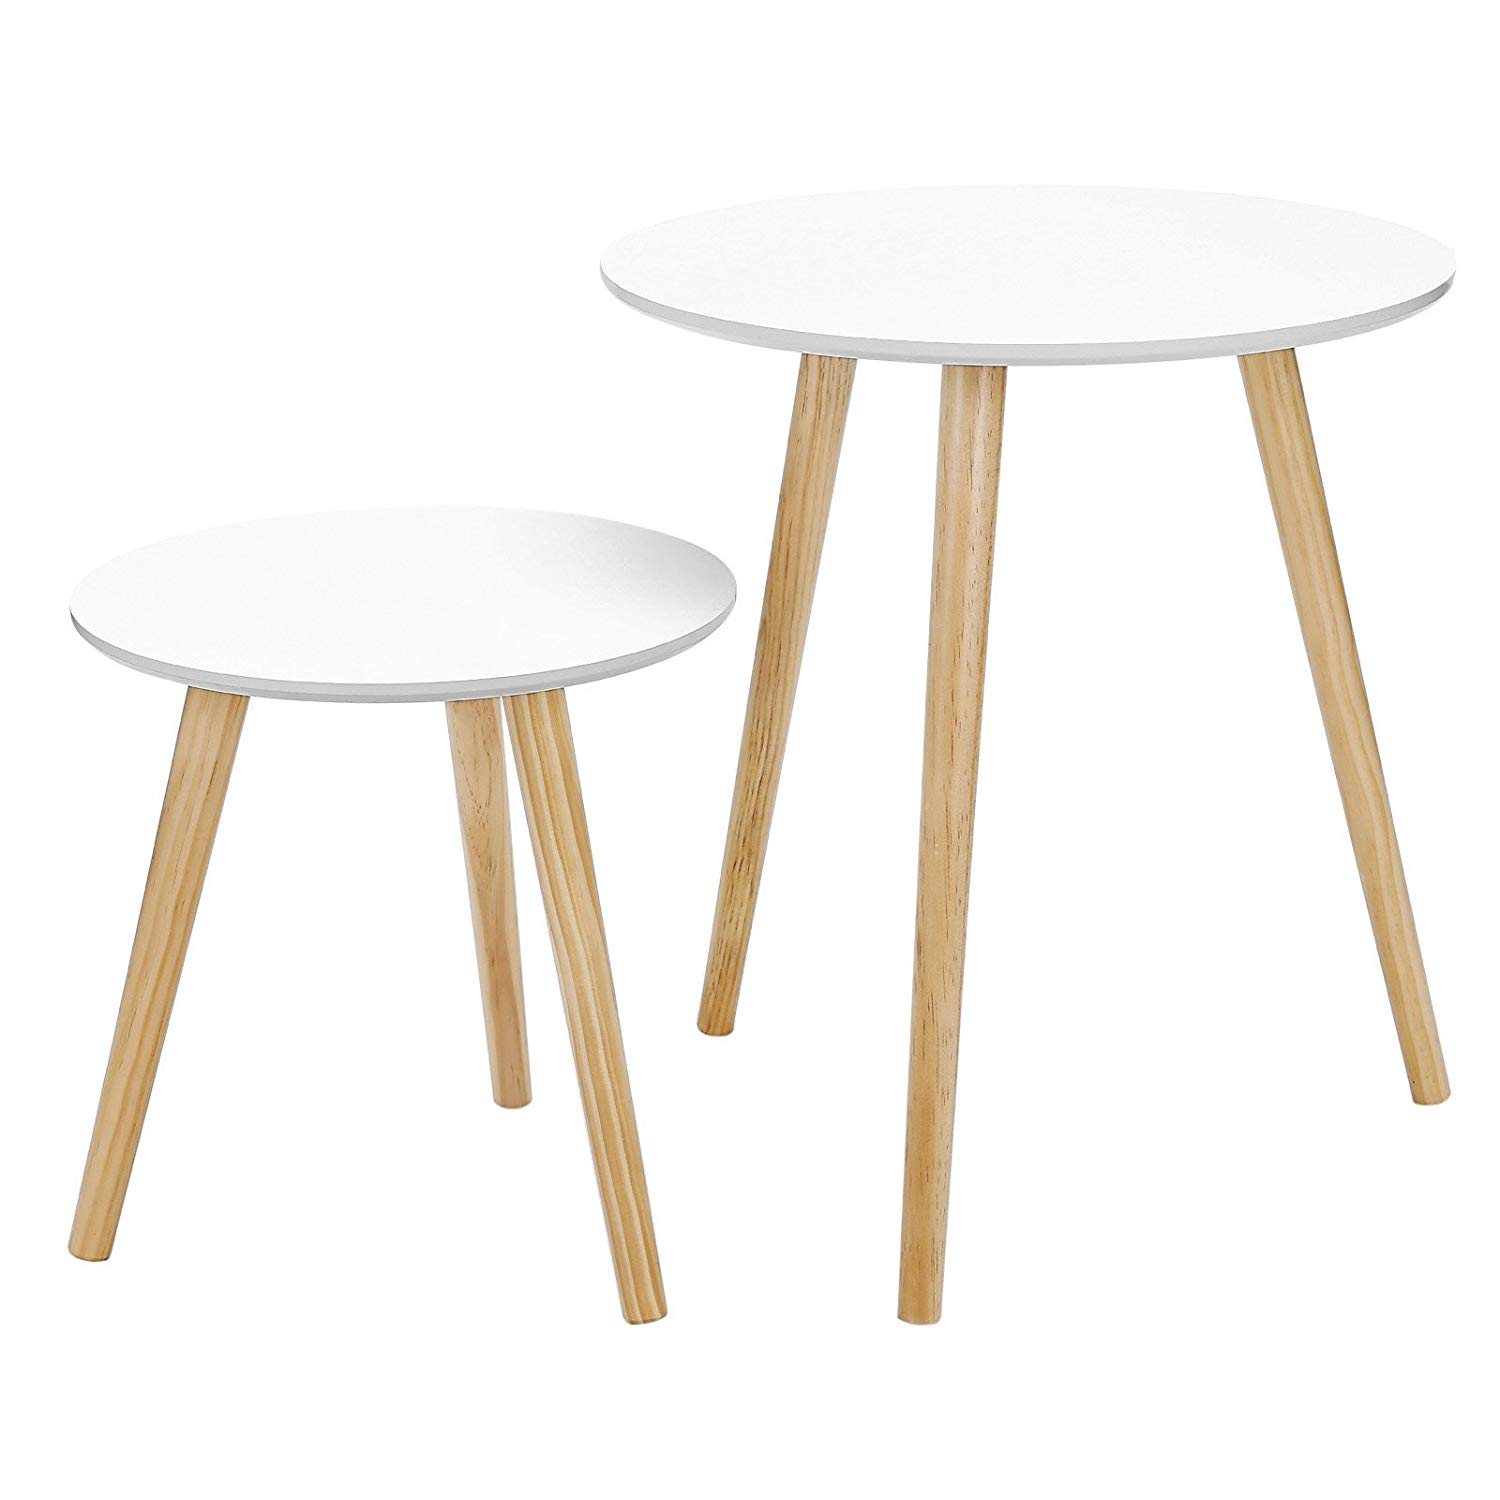 songmics nesting tables round coffee end night mini accent table stand modern multi purpose daffodil series furniture for living room bedroom kid ikea kitchen storage cabinets low